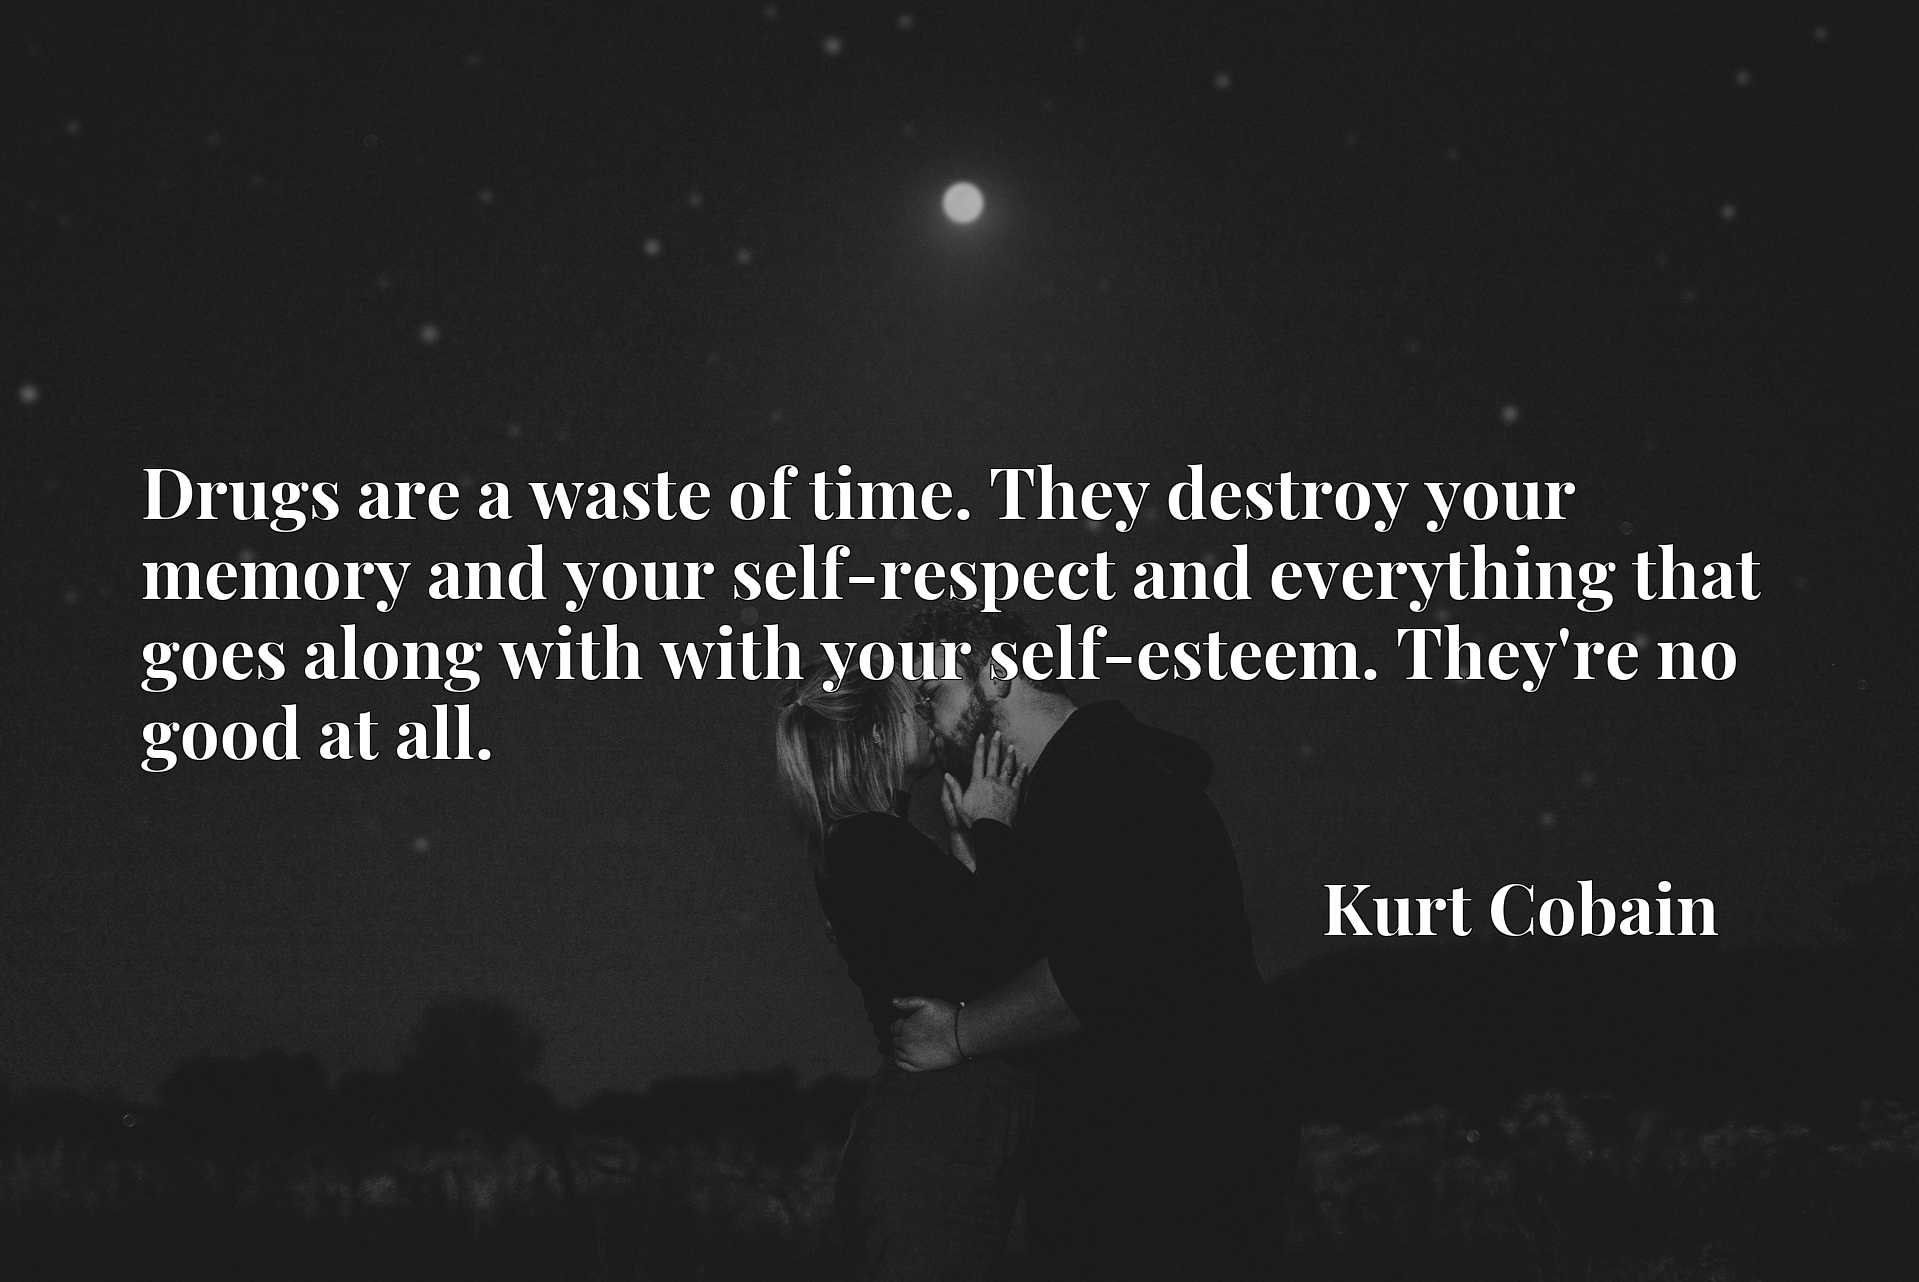 Drugs are a waste of time. They destroy your memory and your self-respect and everything that goes along with with your self-esteem. They're no good at all.